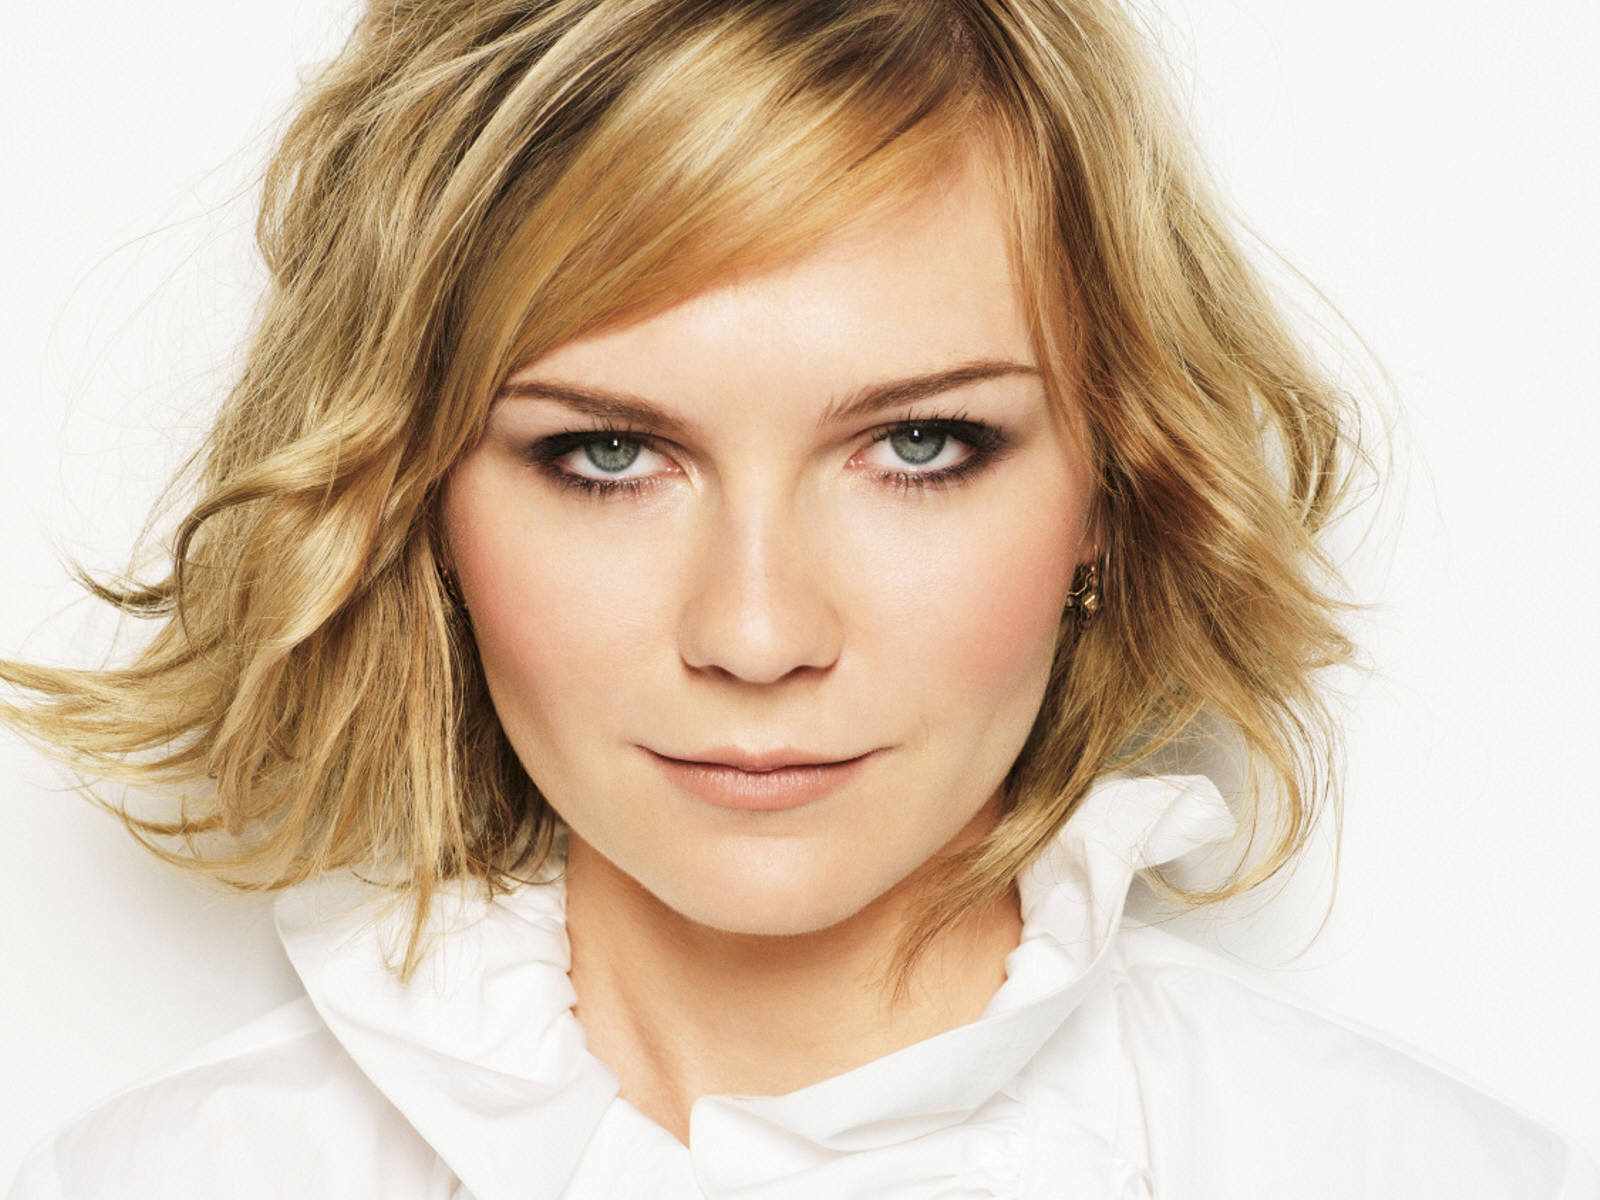 woman Kirsten Dunst faces HD Wallpaper